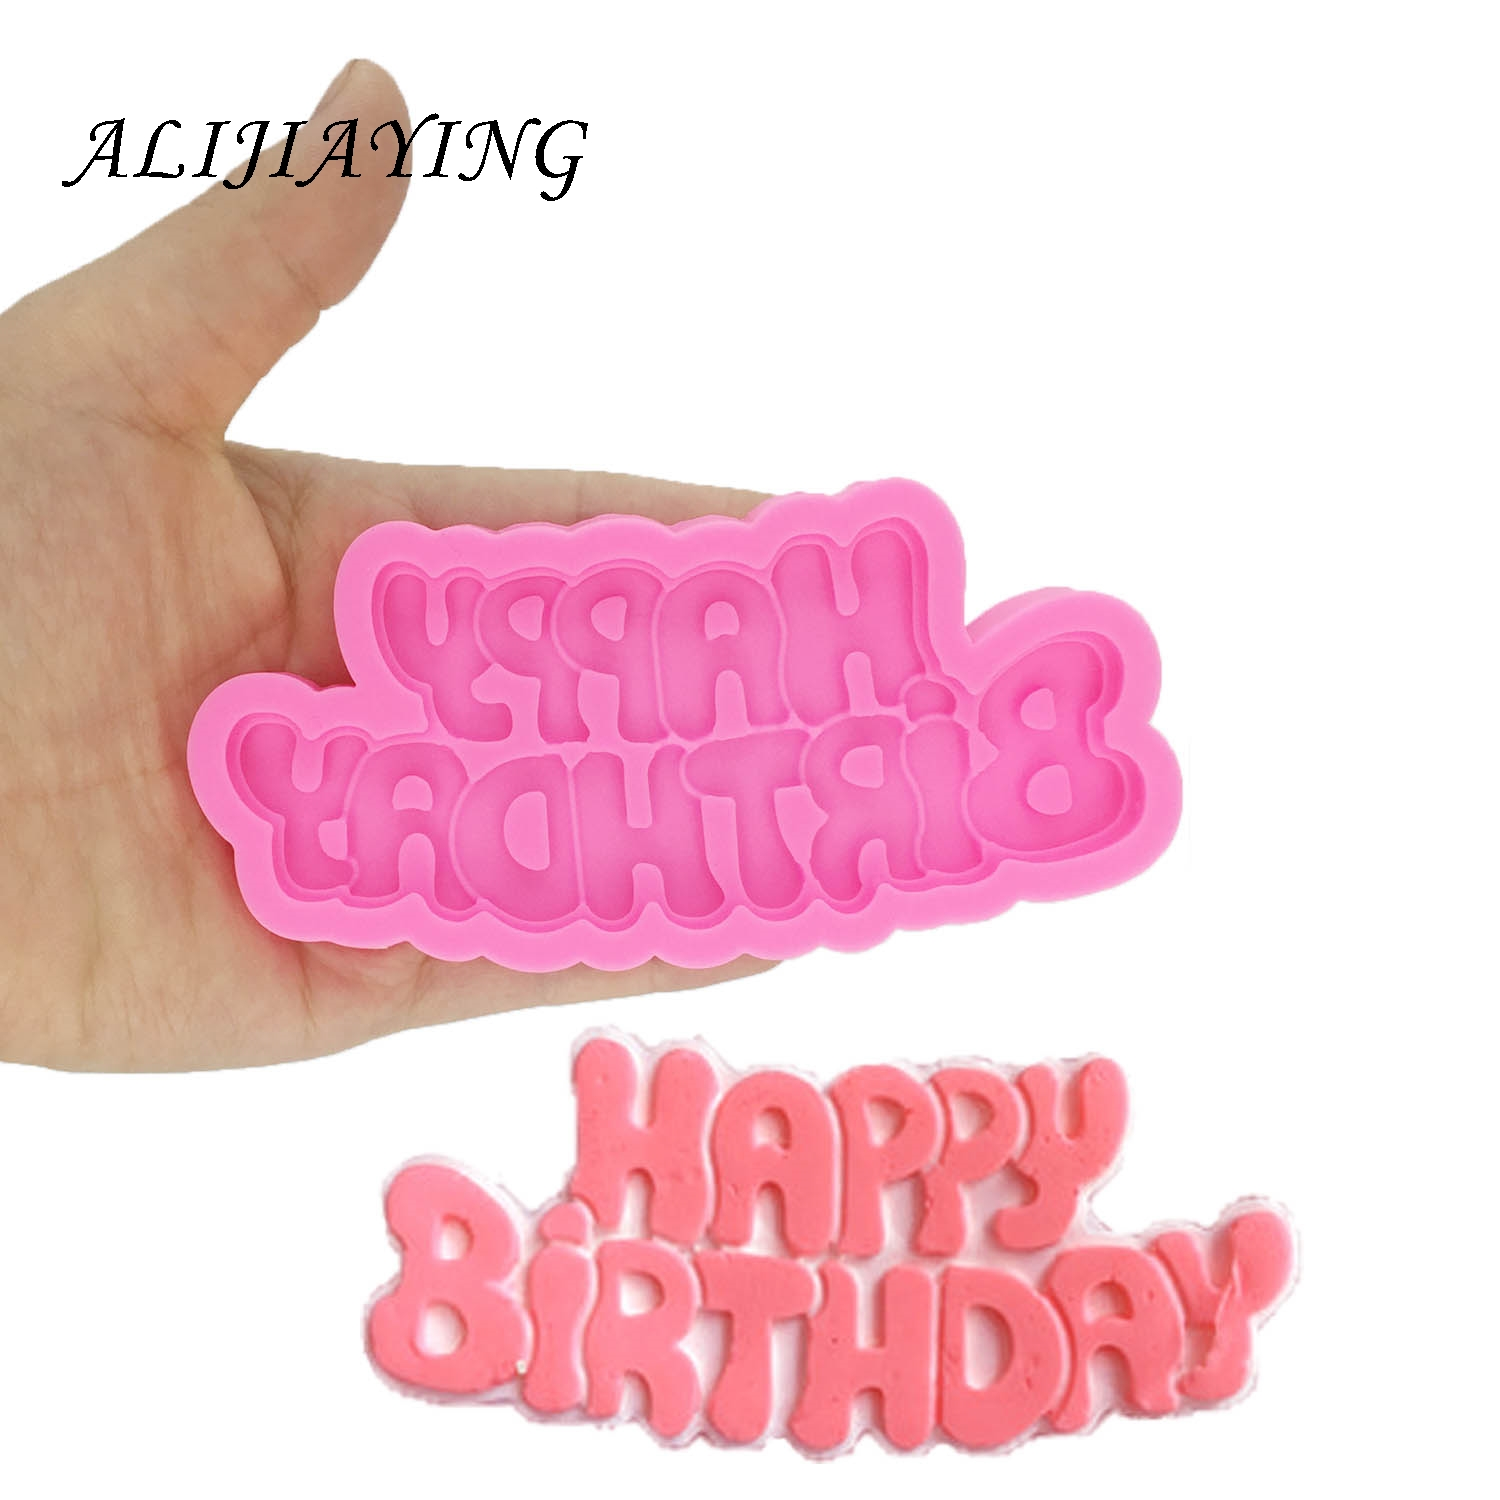 DIY Happy birthday shape Sugarcraft Silicone Molds letter Gumpaste Chocolate <font><b>Fondant</b></font> <font><b>Cake</b></font> <font><b>Decorating</b></font> <font><b>Tools</b></font> wholesale D1333 image